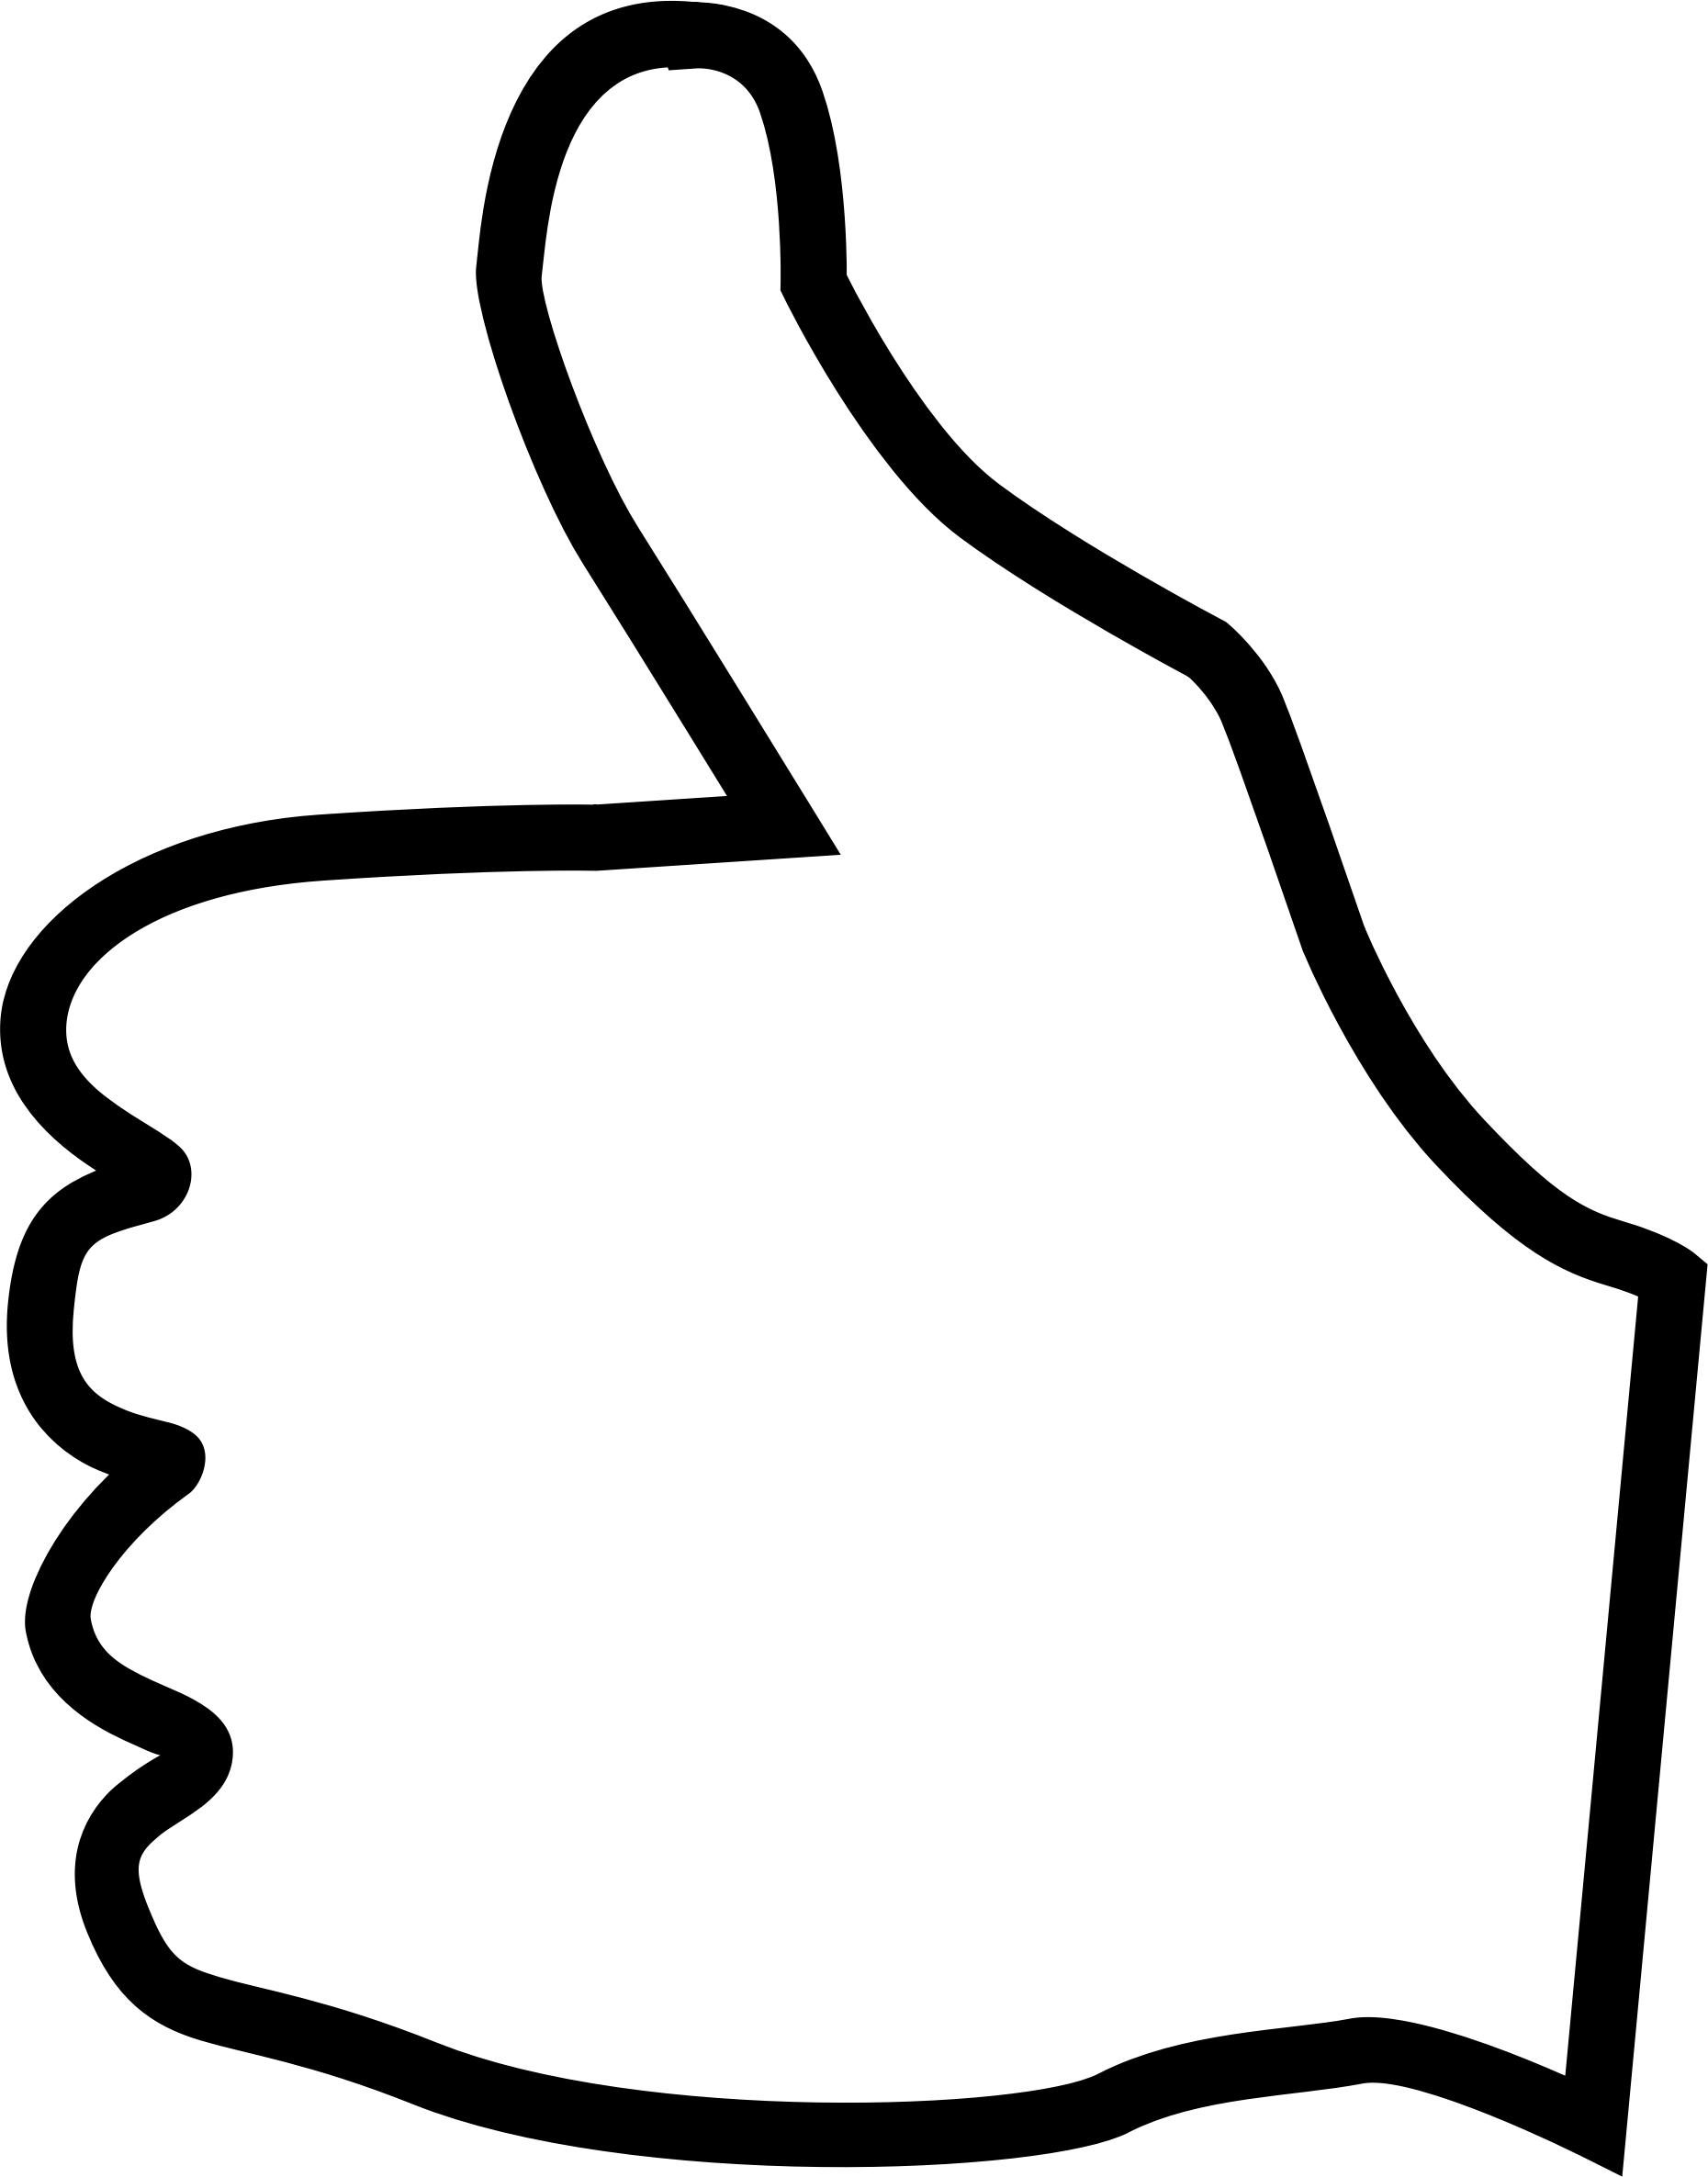 Thumbs up thumbs down clipart free vector black and white stock Free Thumbs Up Clipart Pictures - Clipartix vector black and white stock